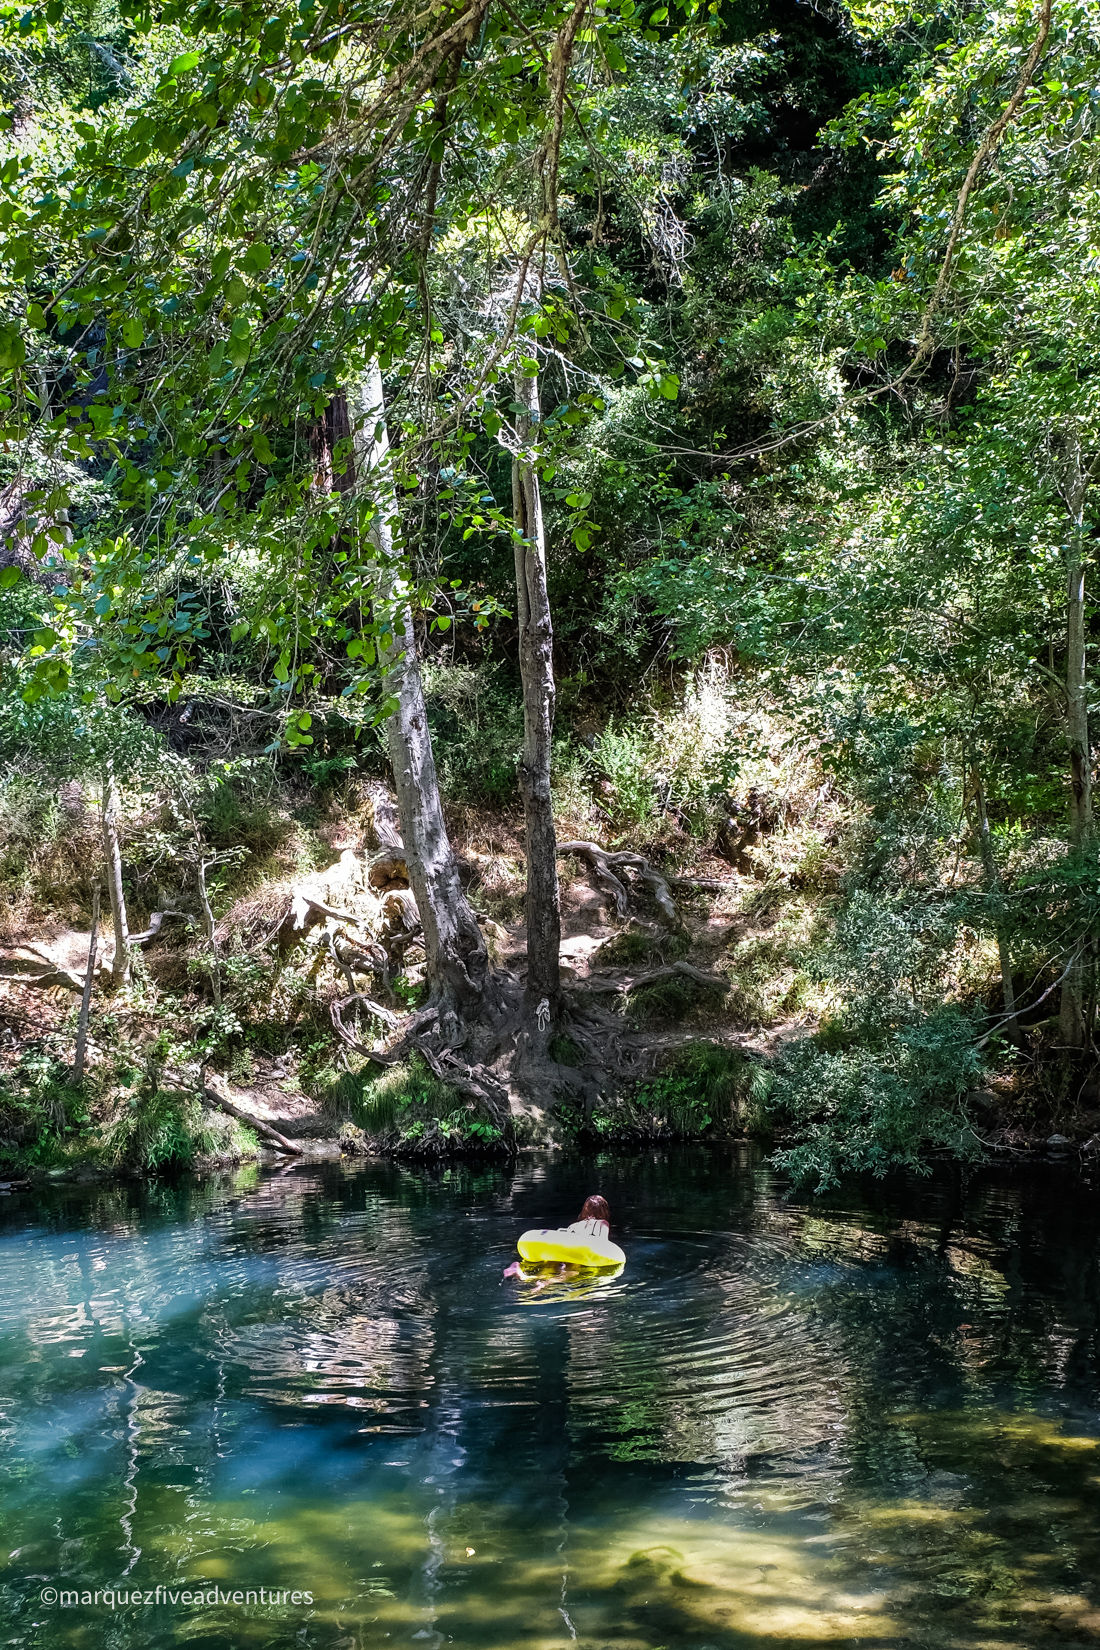 Swimming over to the rope swing at Big Rock Hole in Henry Cowell Redwoods State Park. Santa Cruz, California